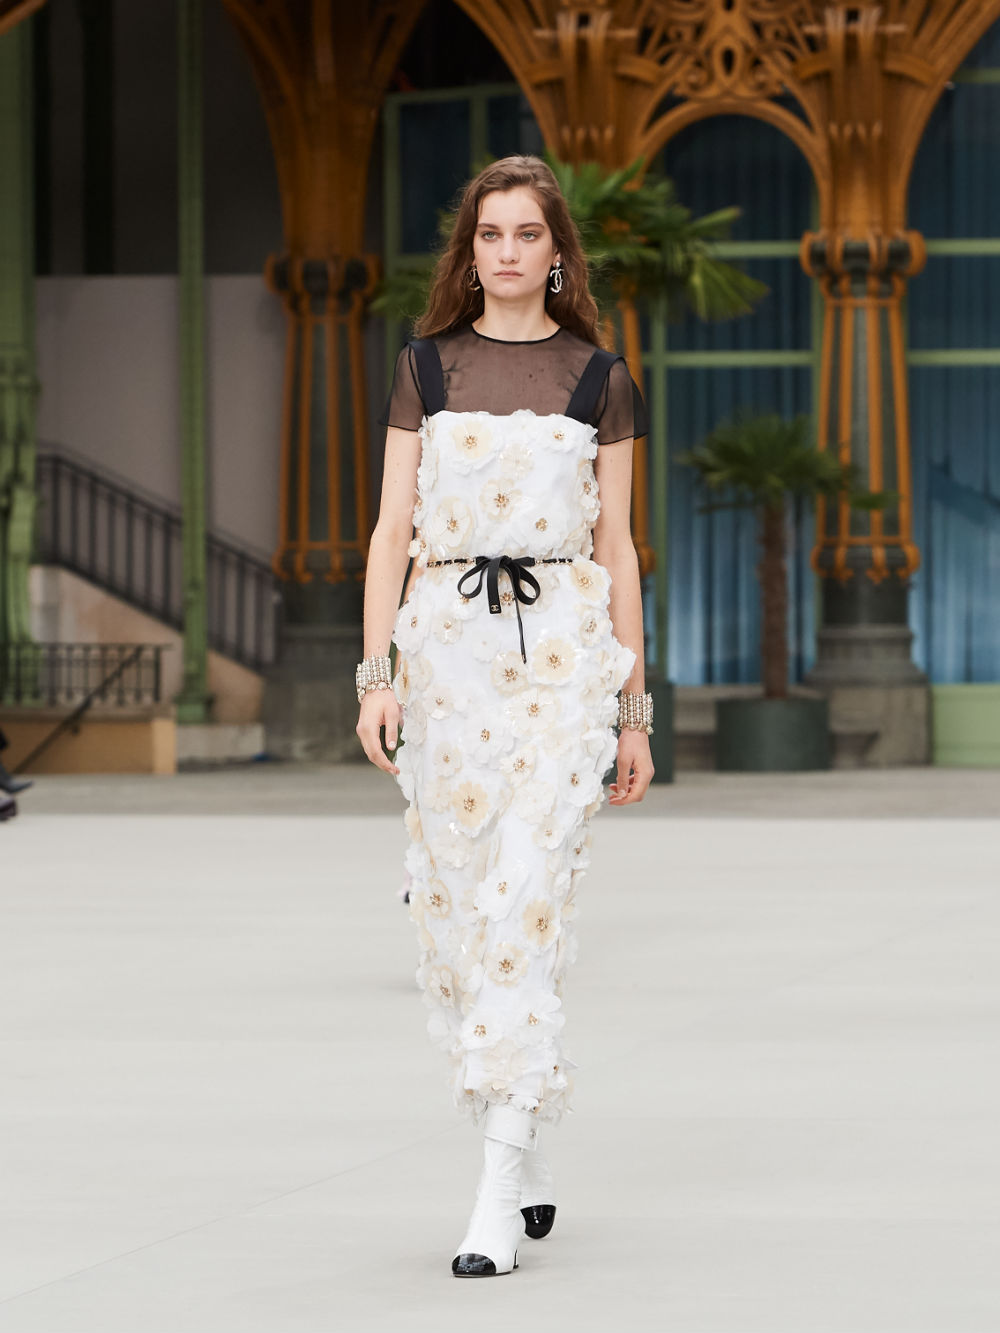 Cruise_collection_Chanel 2019 - 2020 (44)